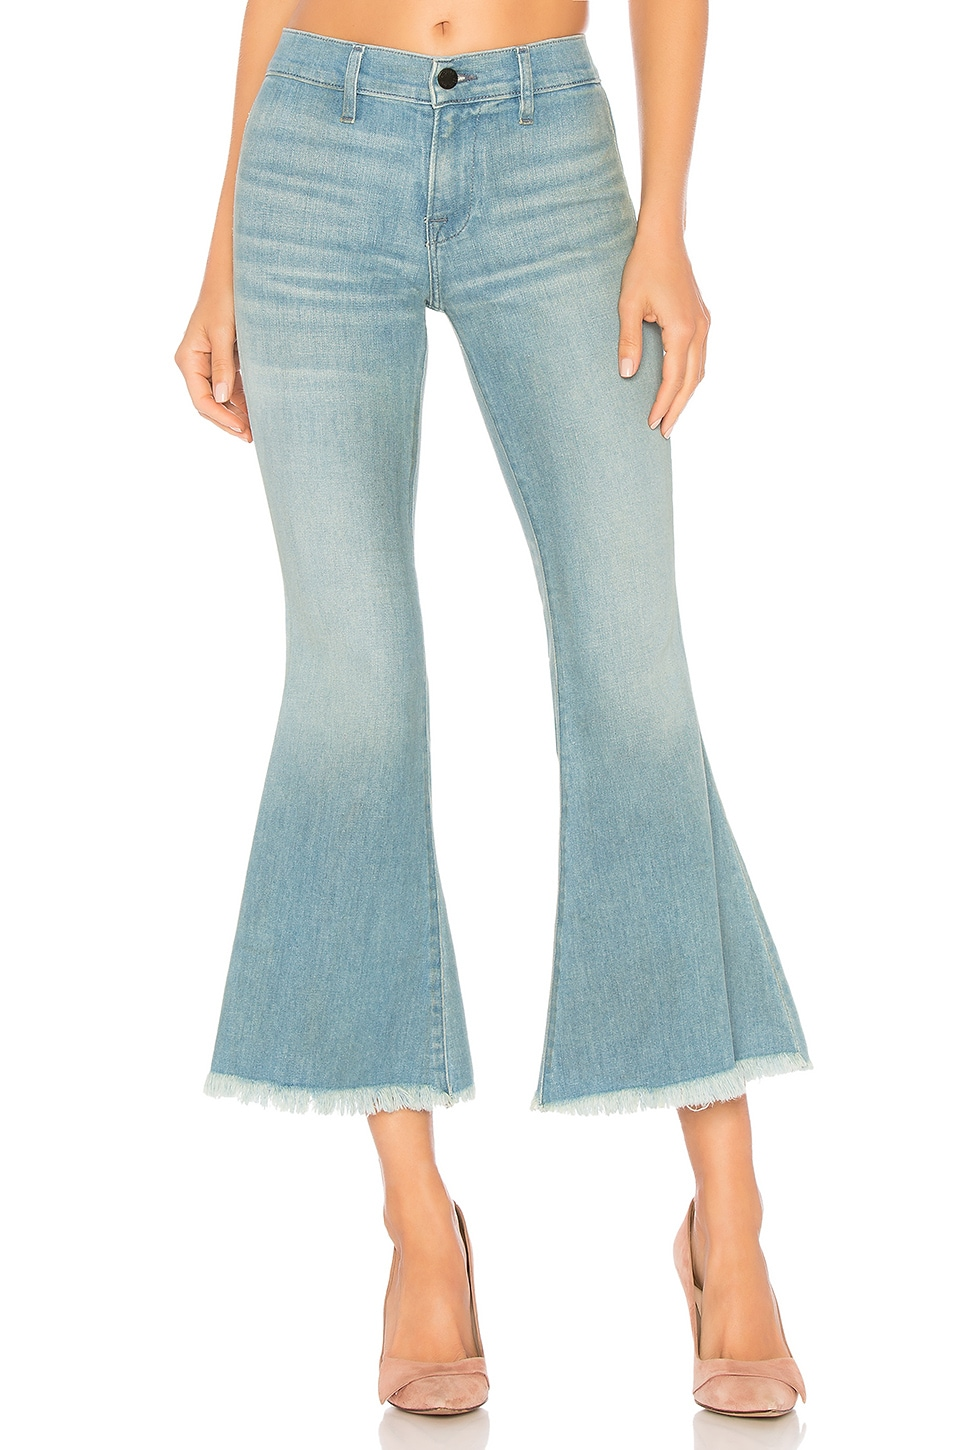 ICONS Objects of Devotion Bell Bottoms in Iggy